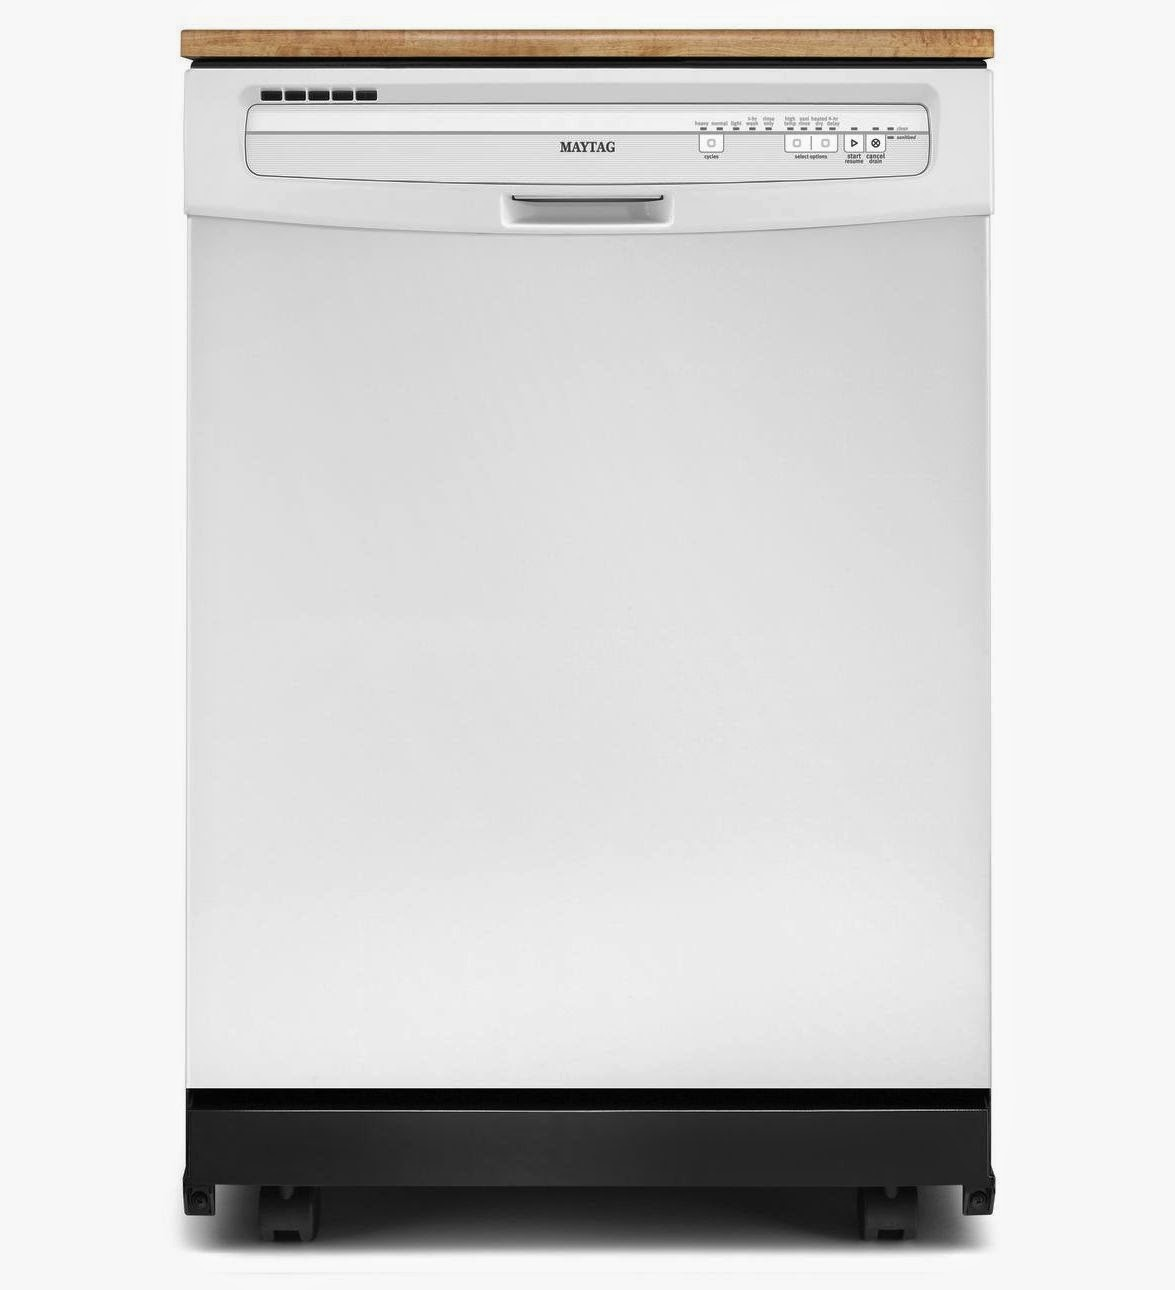 Maytag Portable Dishwasher MDC4809PAW